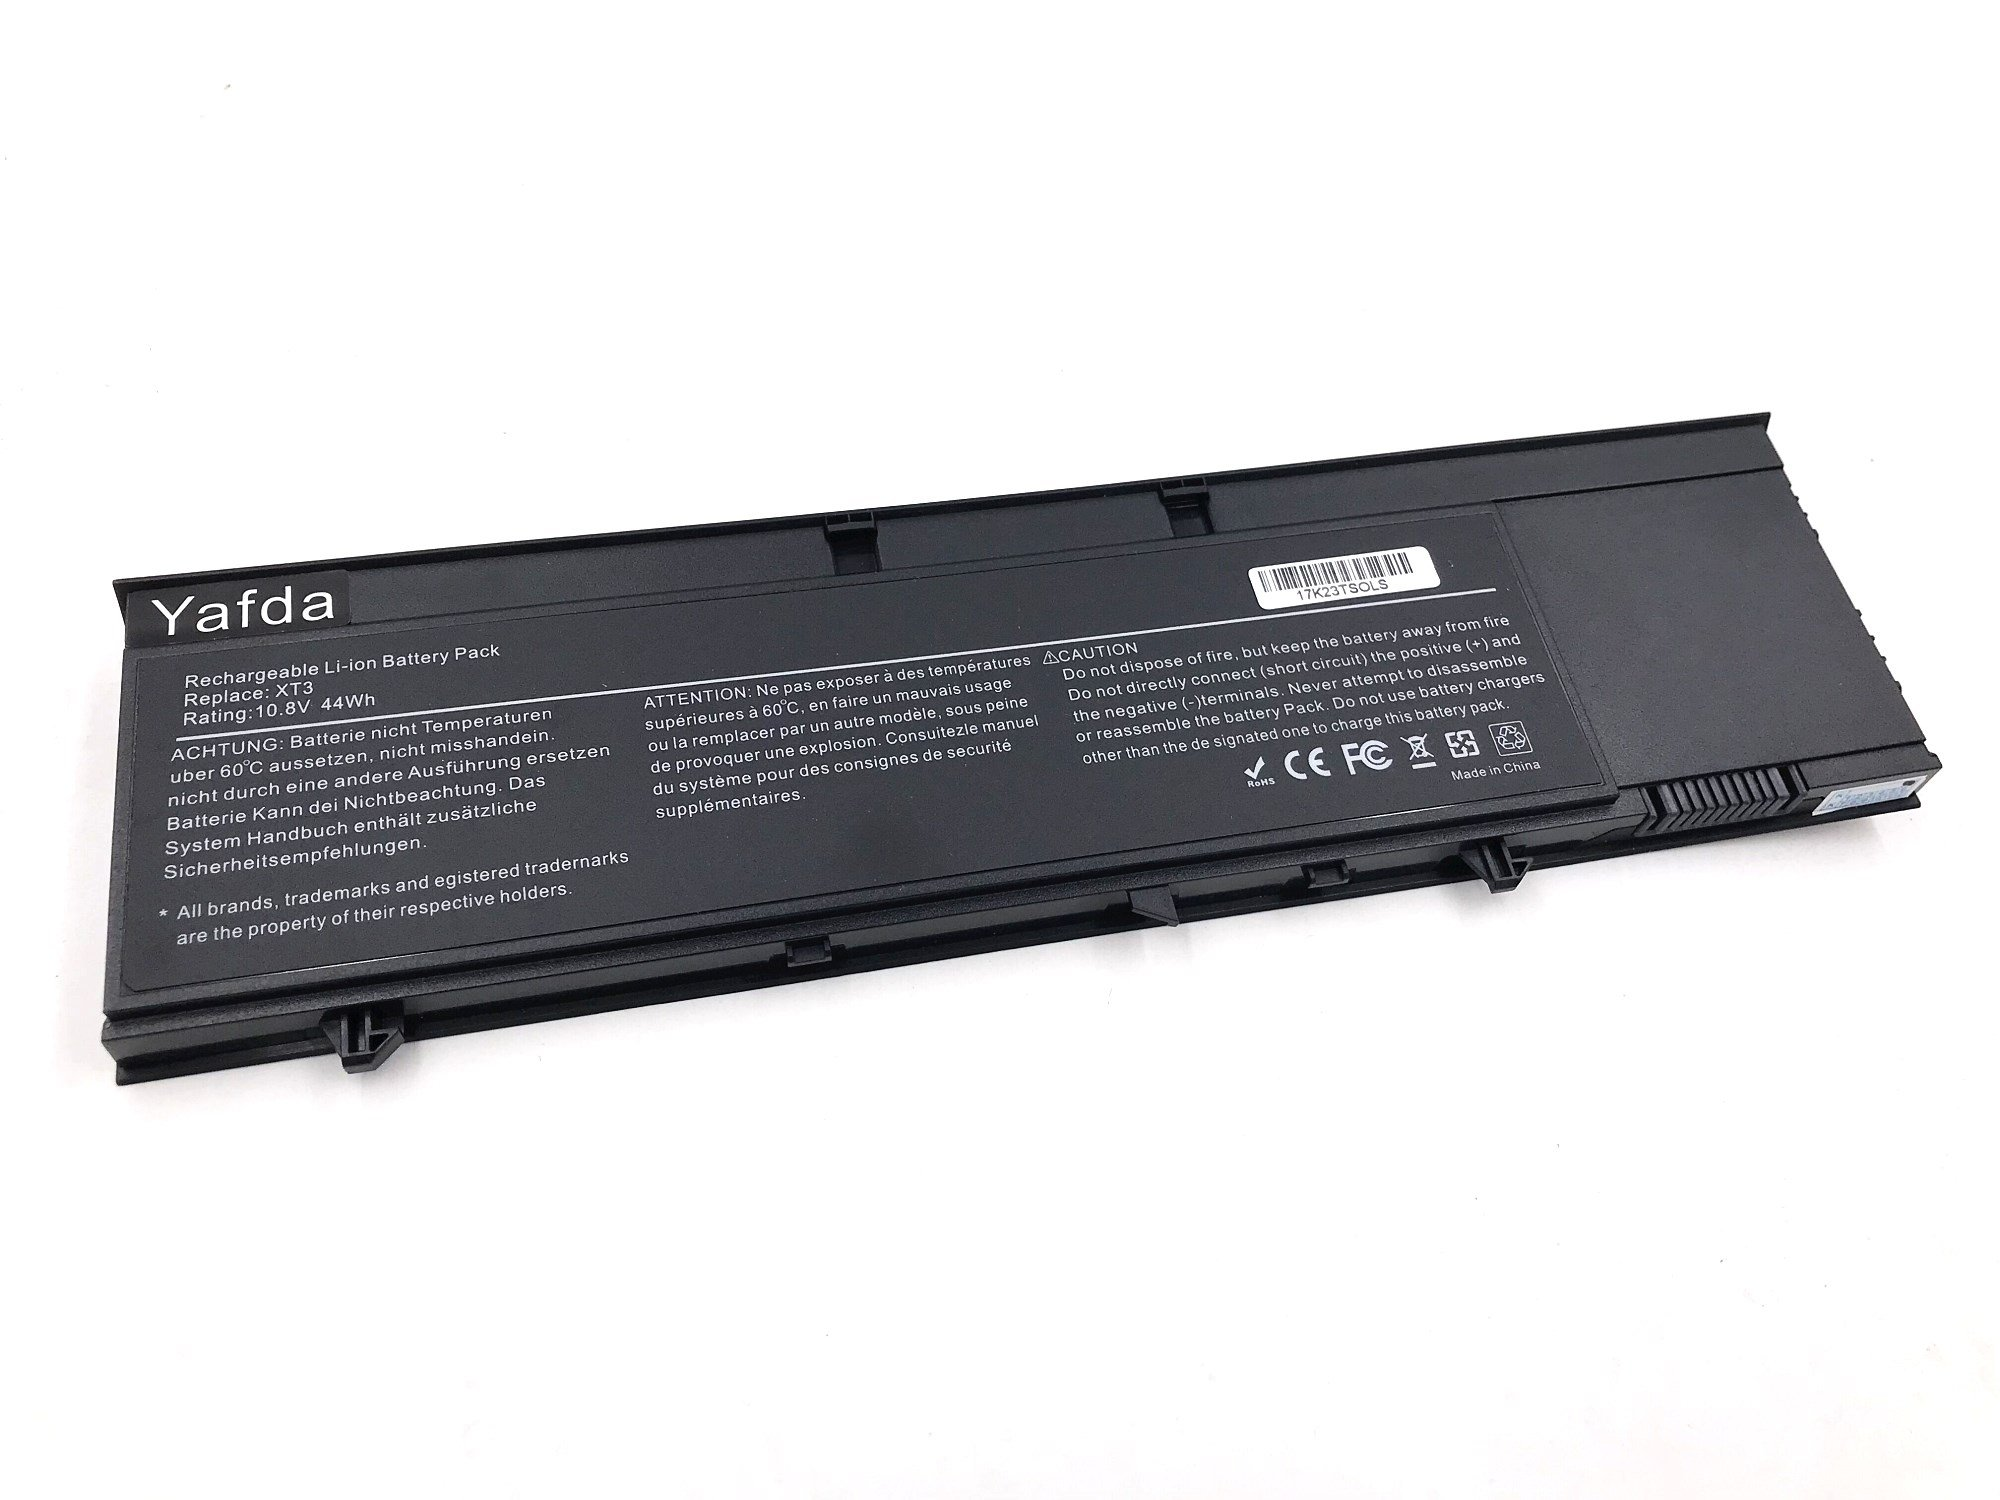 Yafda XT3 10.8V 44Wh New Laptop Battery for Dell Latitude XT3 Tablet PC 1NP0F H6T9R 37HGH RV8MP